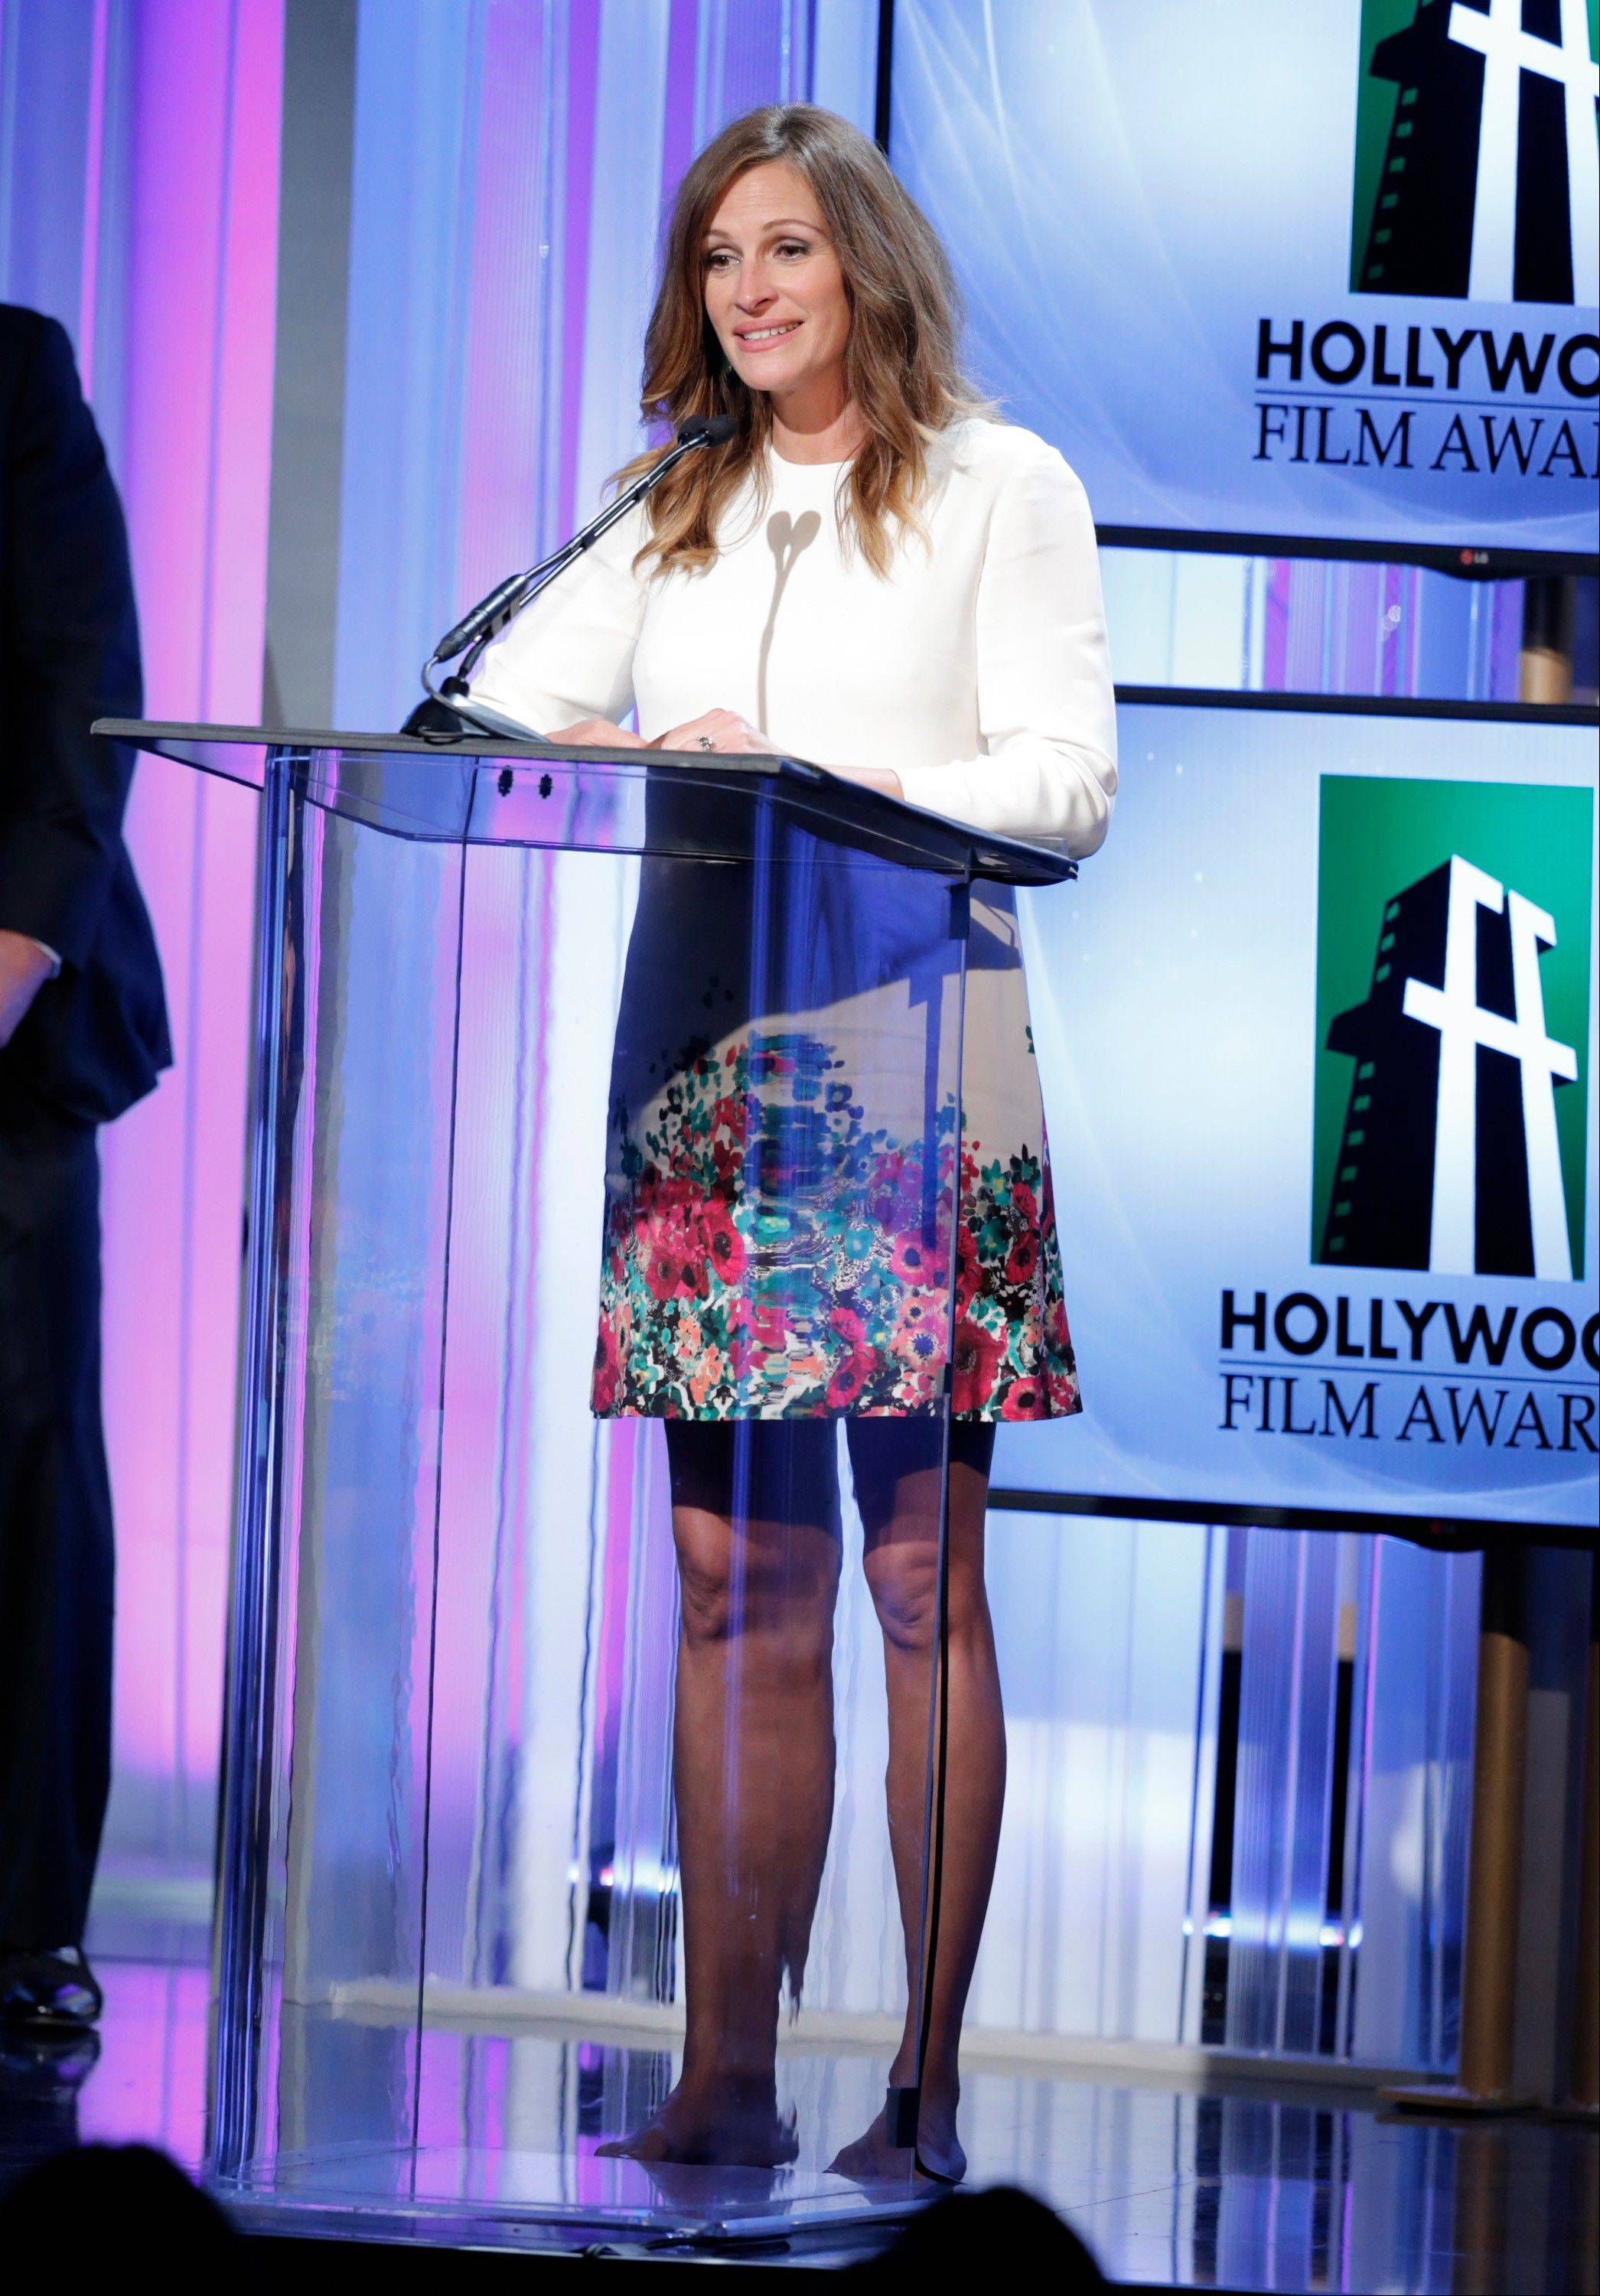 Julia Roberts accepts the Hollywood Supporting Actress award at the 17th Annual Hollywood Film Awards Gala at the Beverly Hilton Hotel on Monday.